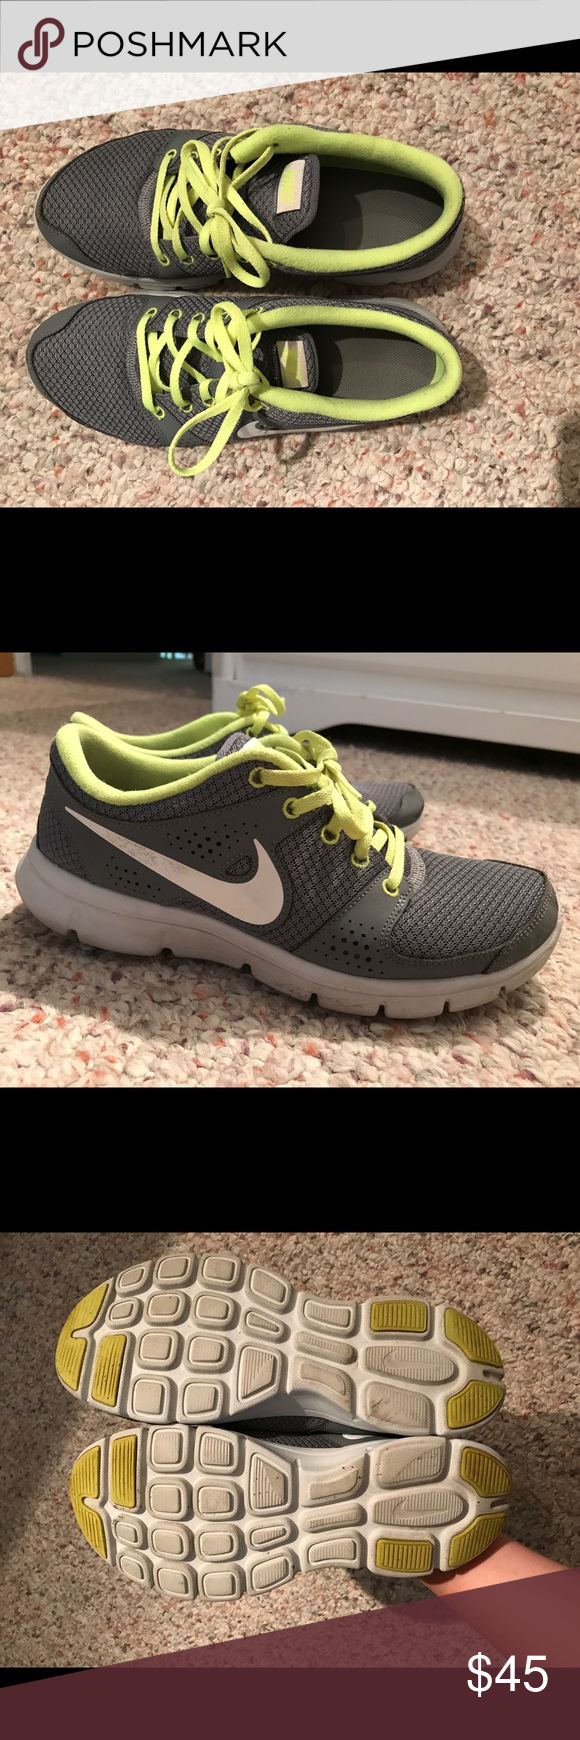 Nike Shoes In good condition. Except for some scuff marks, they are in great shape. Gray color with neon yellow/green laces and trim. Nike Shoes Sneakers